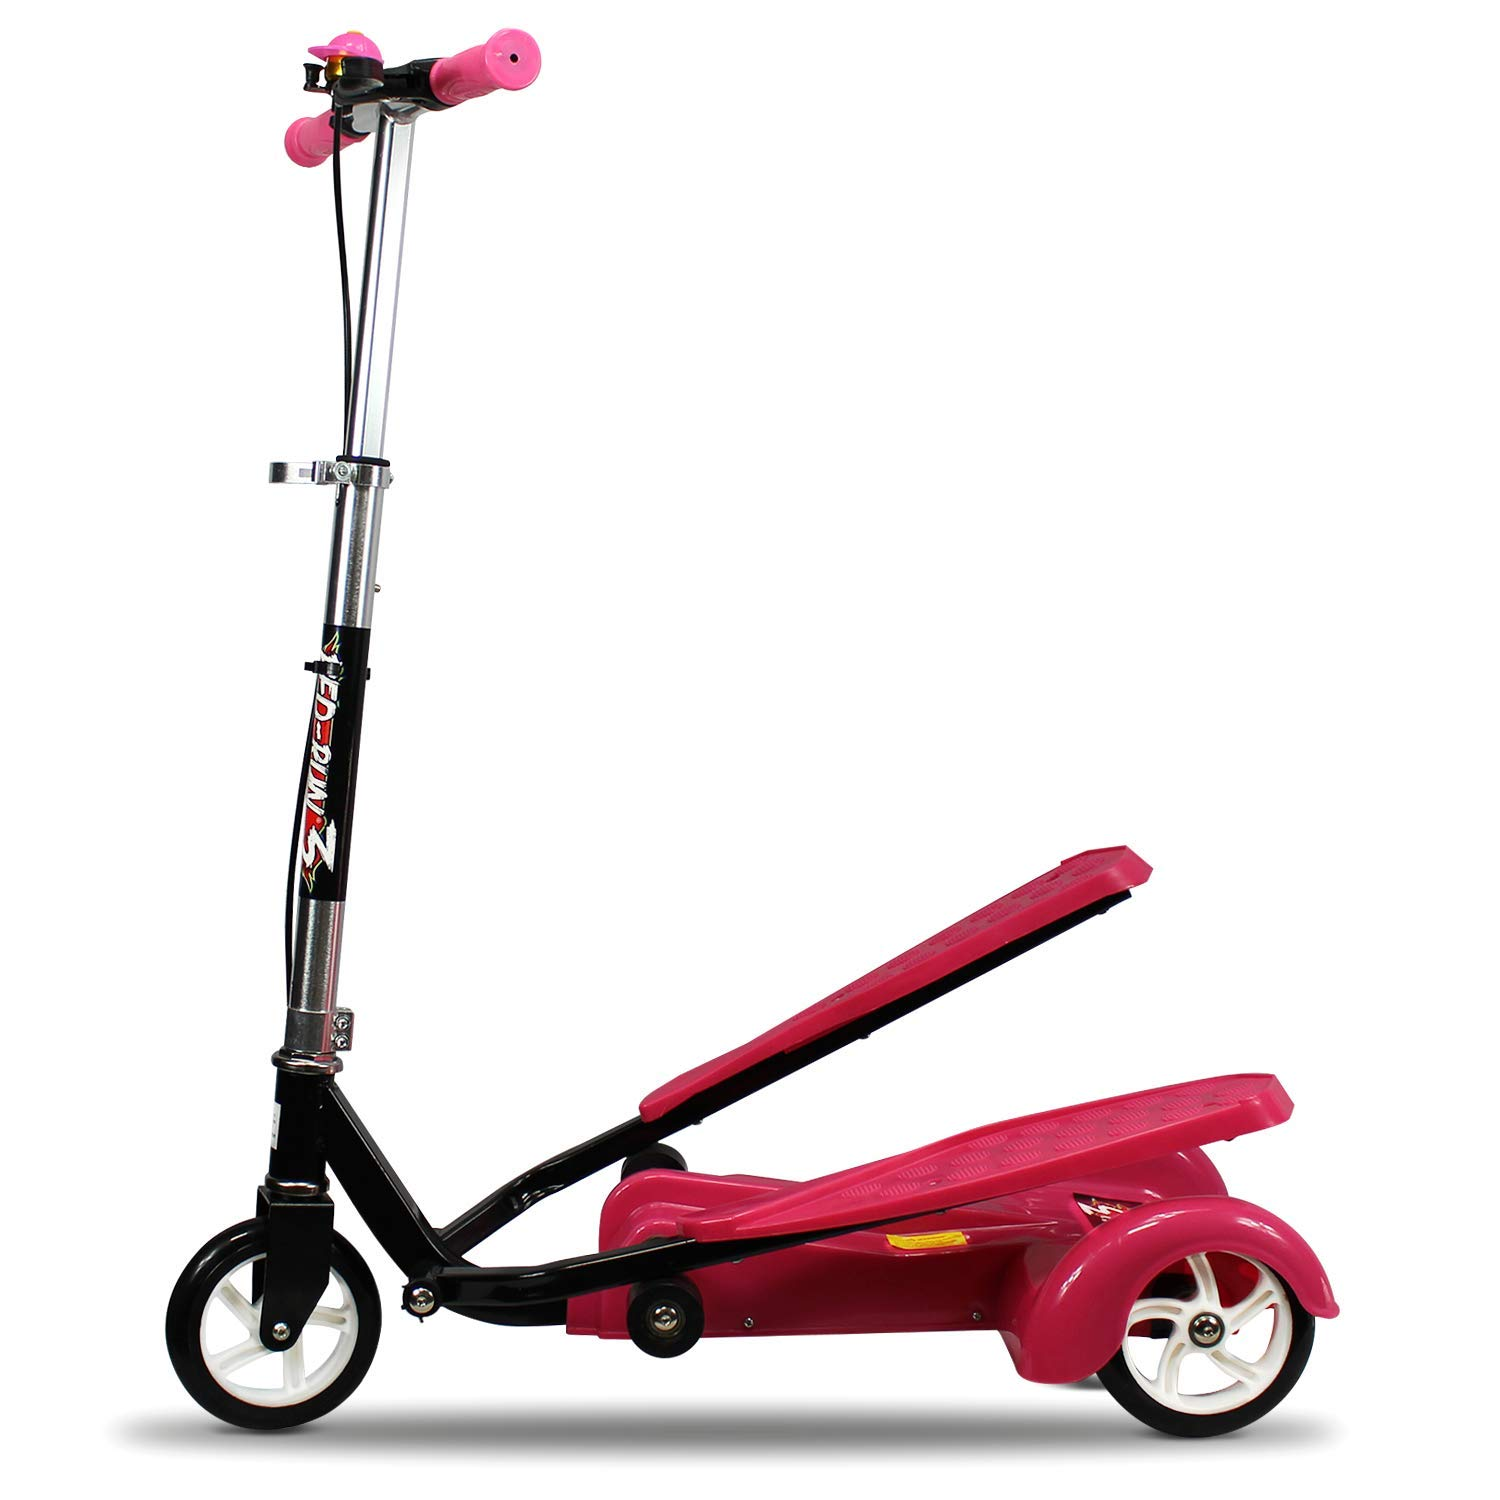 Ped-Run3 Kids Scooter for Boys and Girls with Advanced Dual Pedal Action, Bike Scooter Hybrid (Pink) by Ped-Run3